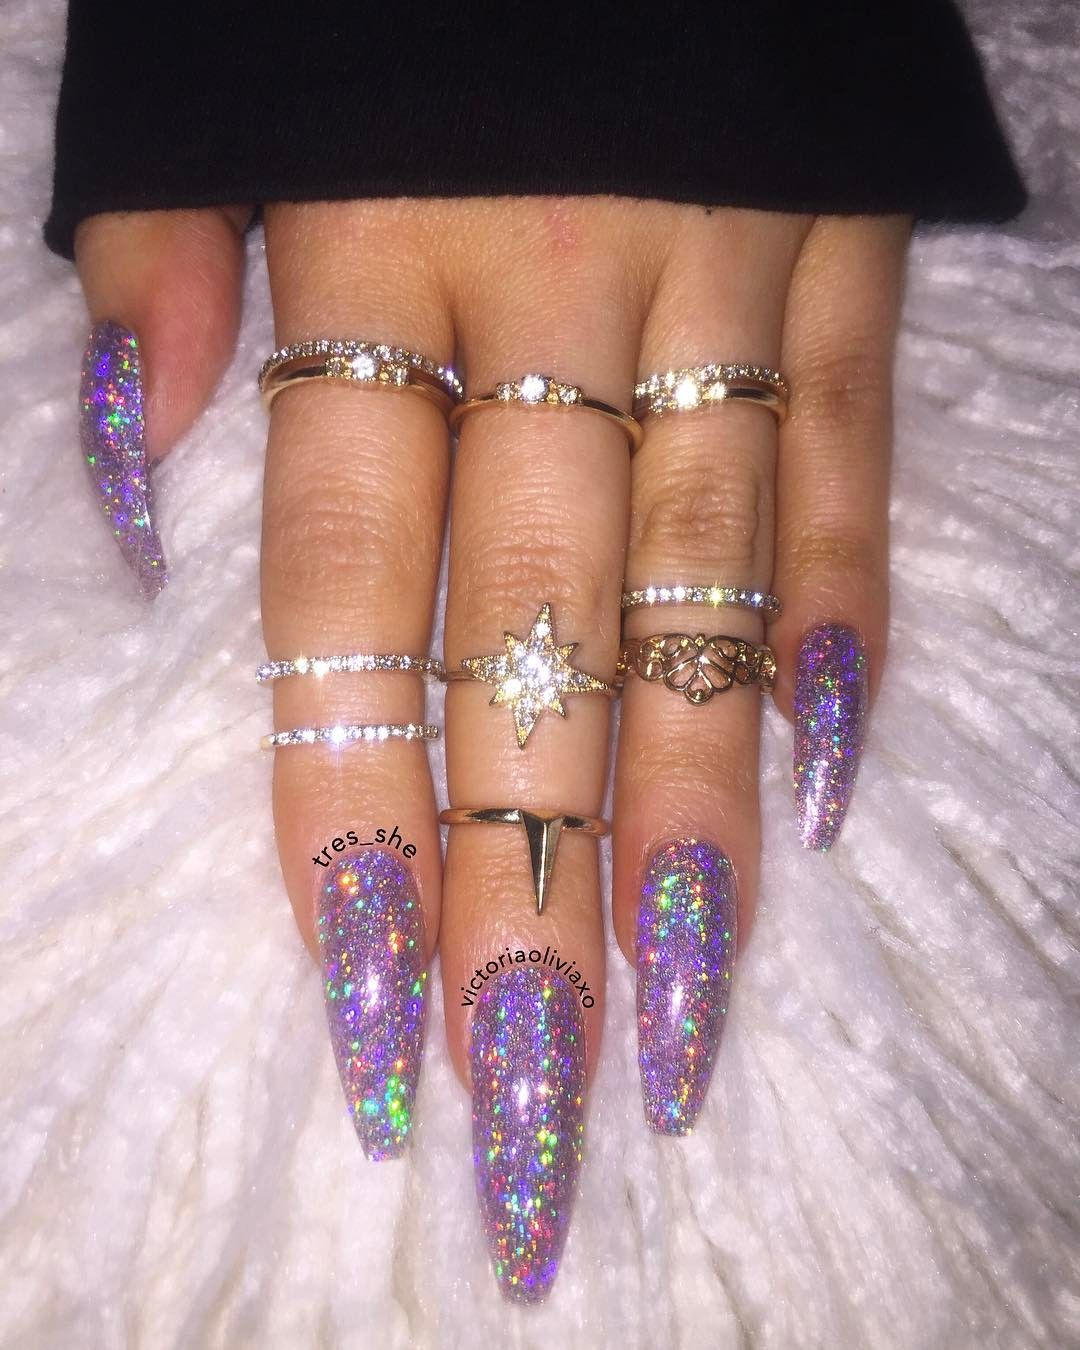 Pin By Yani M On Health, Hair, Makeup And Nails